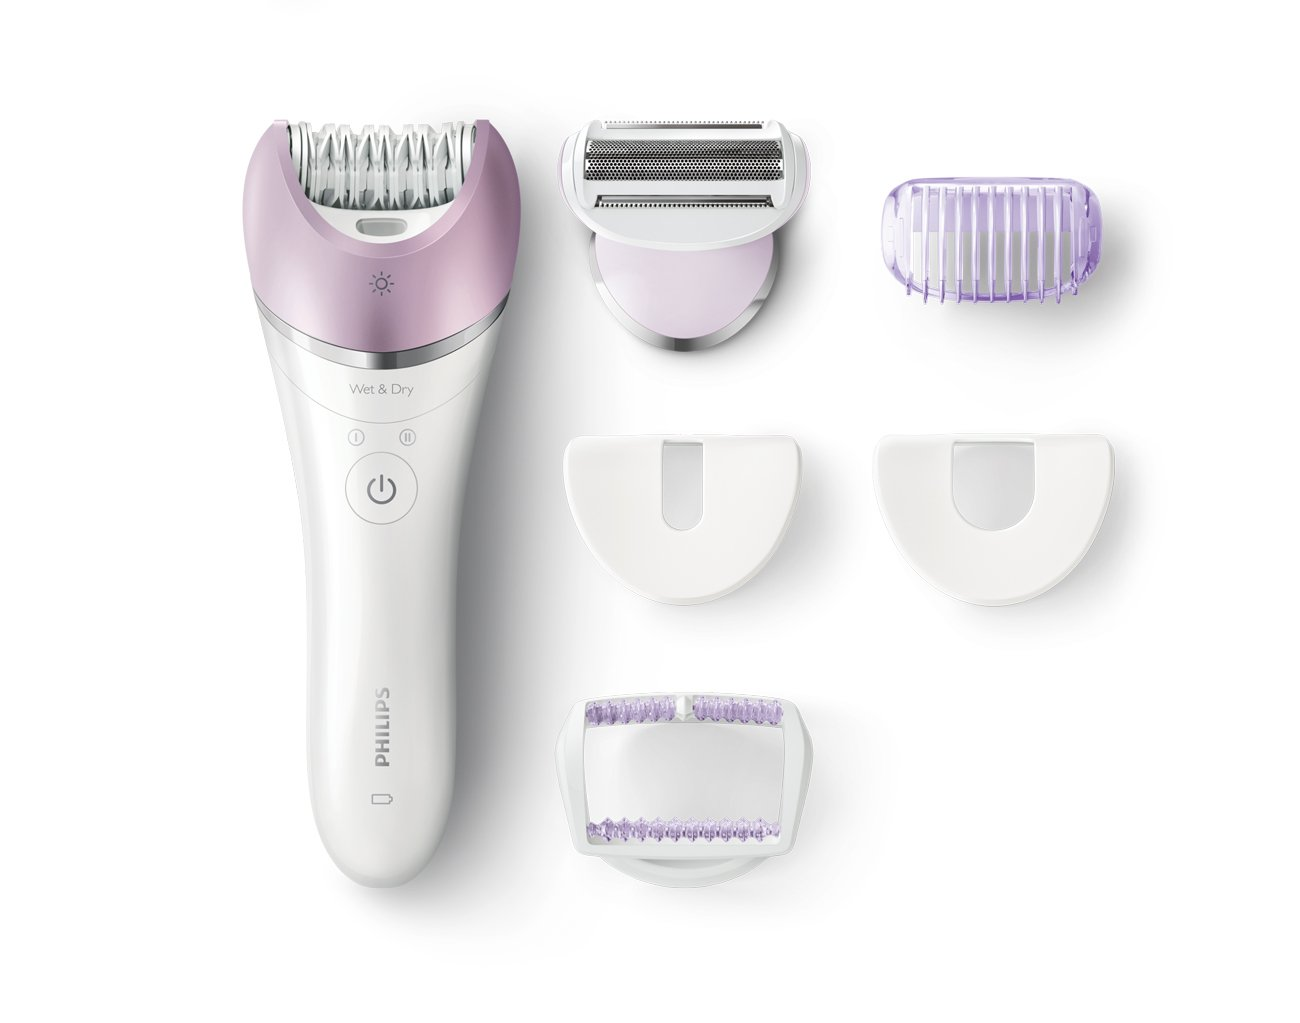 Philips Satinelle Advanced BRE630, Wet & Dry Hair Removal Epilator, Rechargeable, 6 accessories